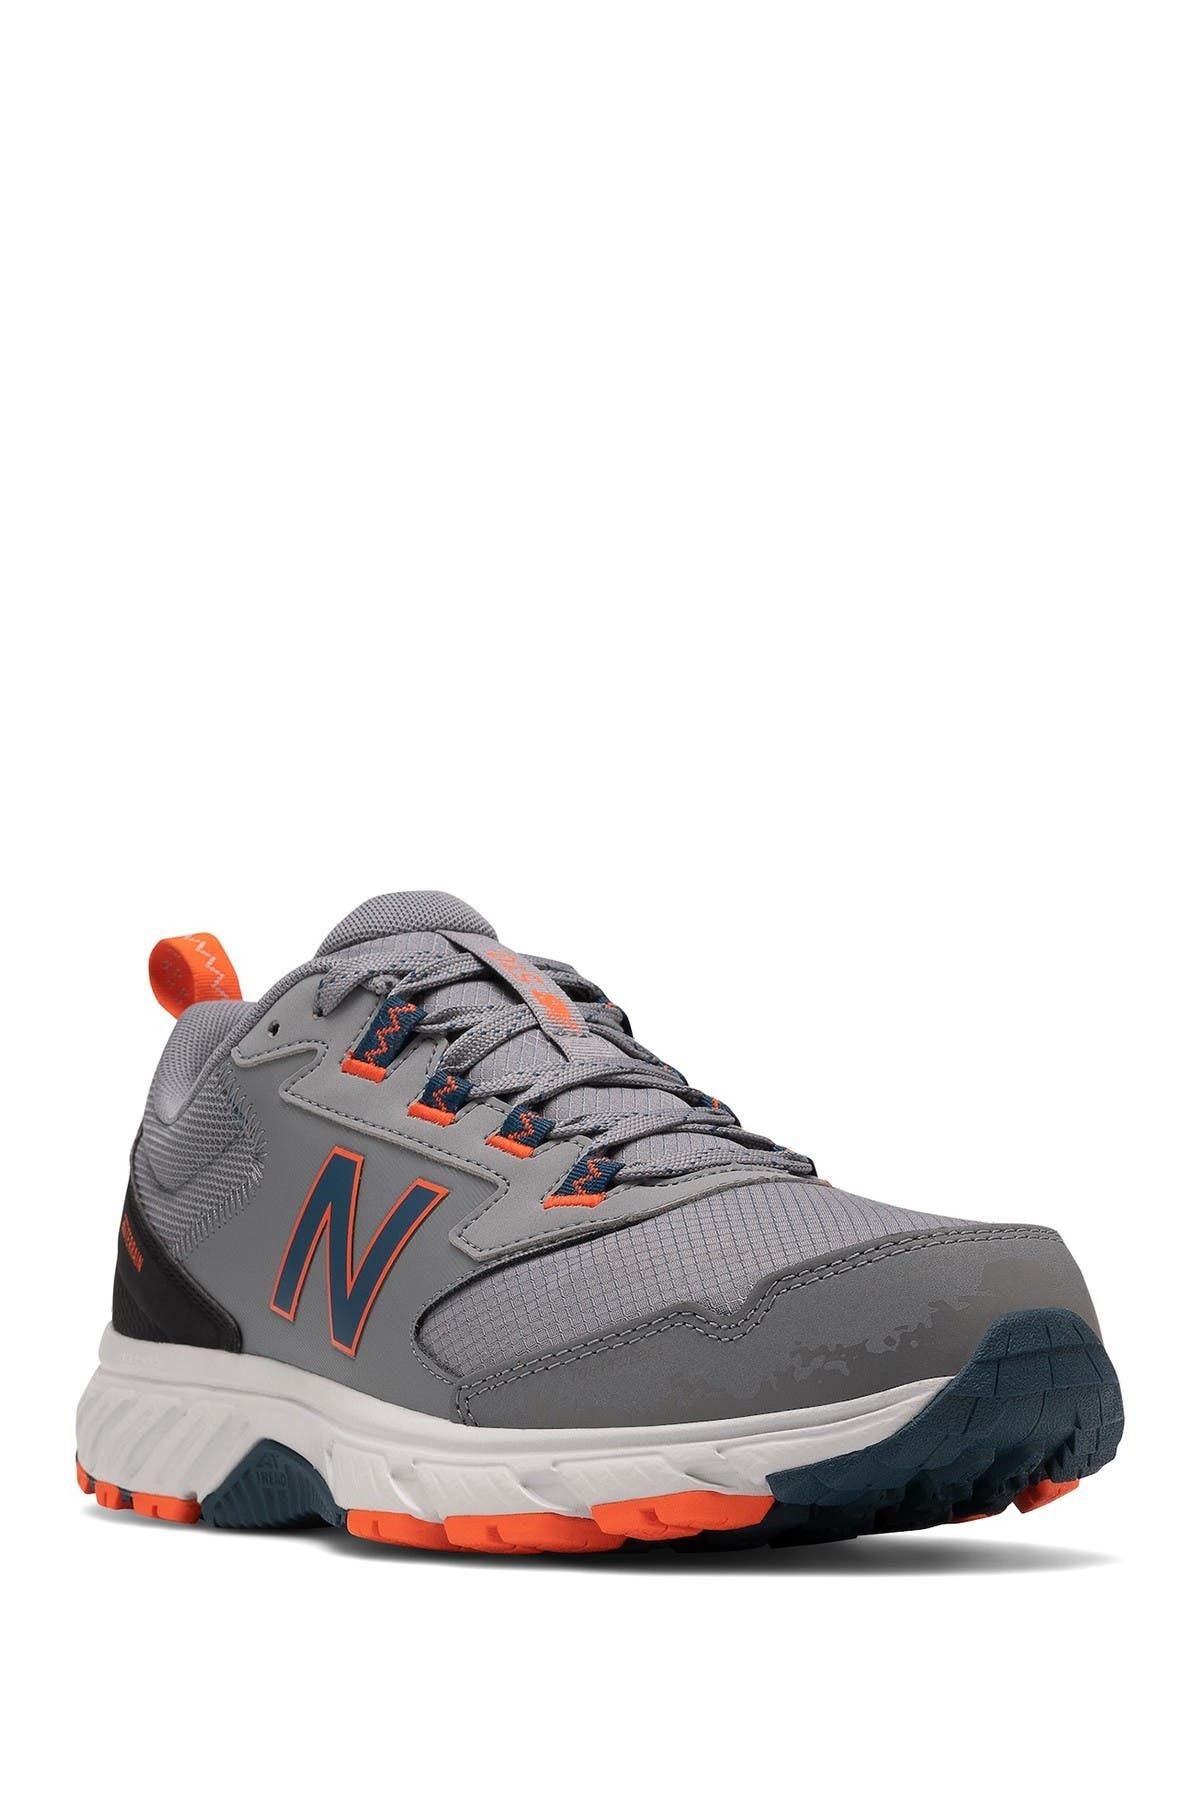 Image of New Balance MT510SB5 Running Trail Sneaker